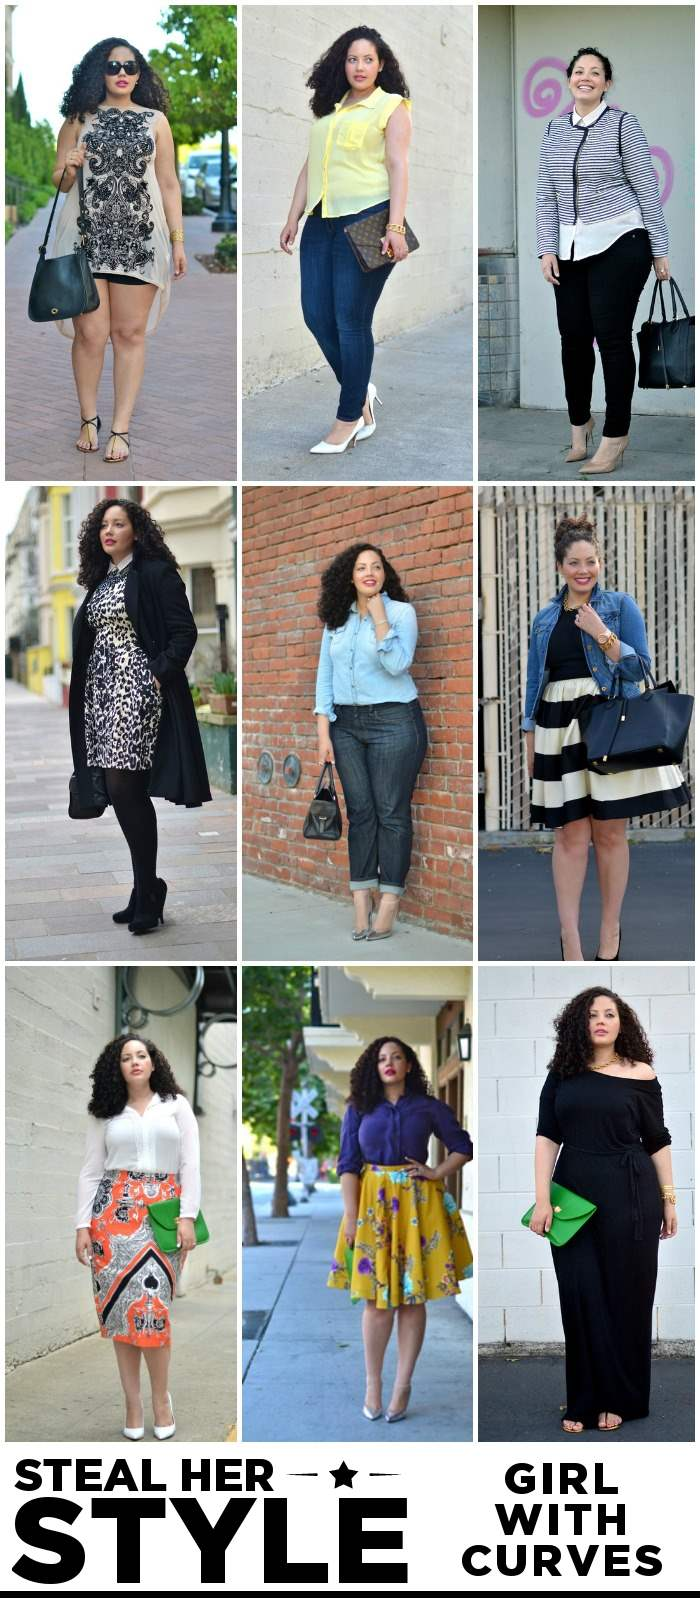 Girl With Curves - Steal Her Style